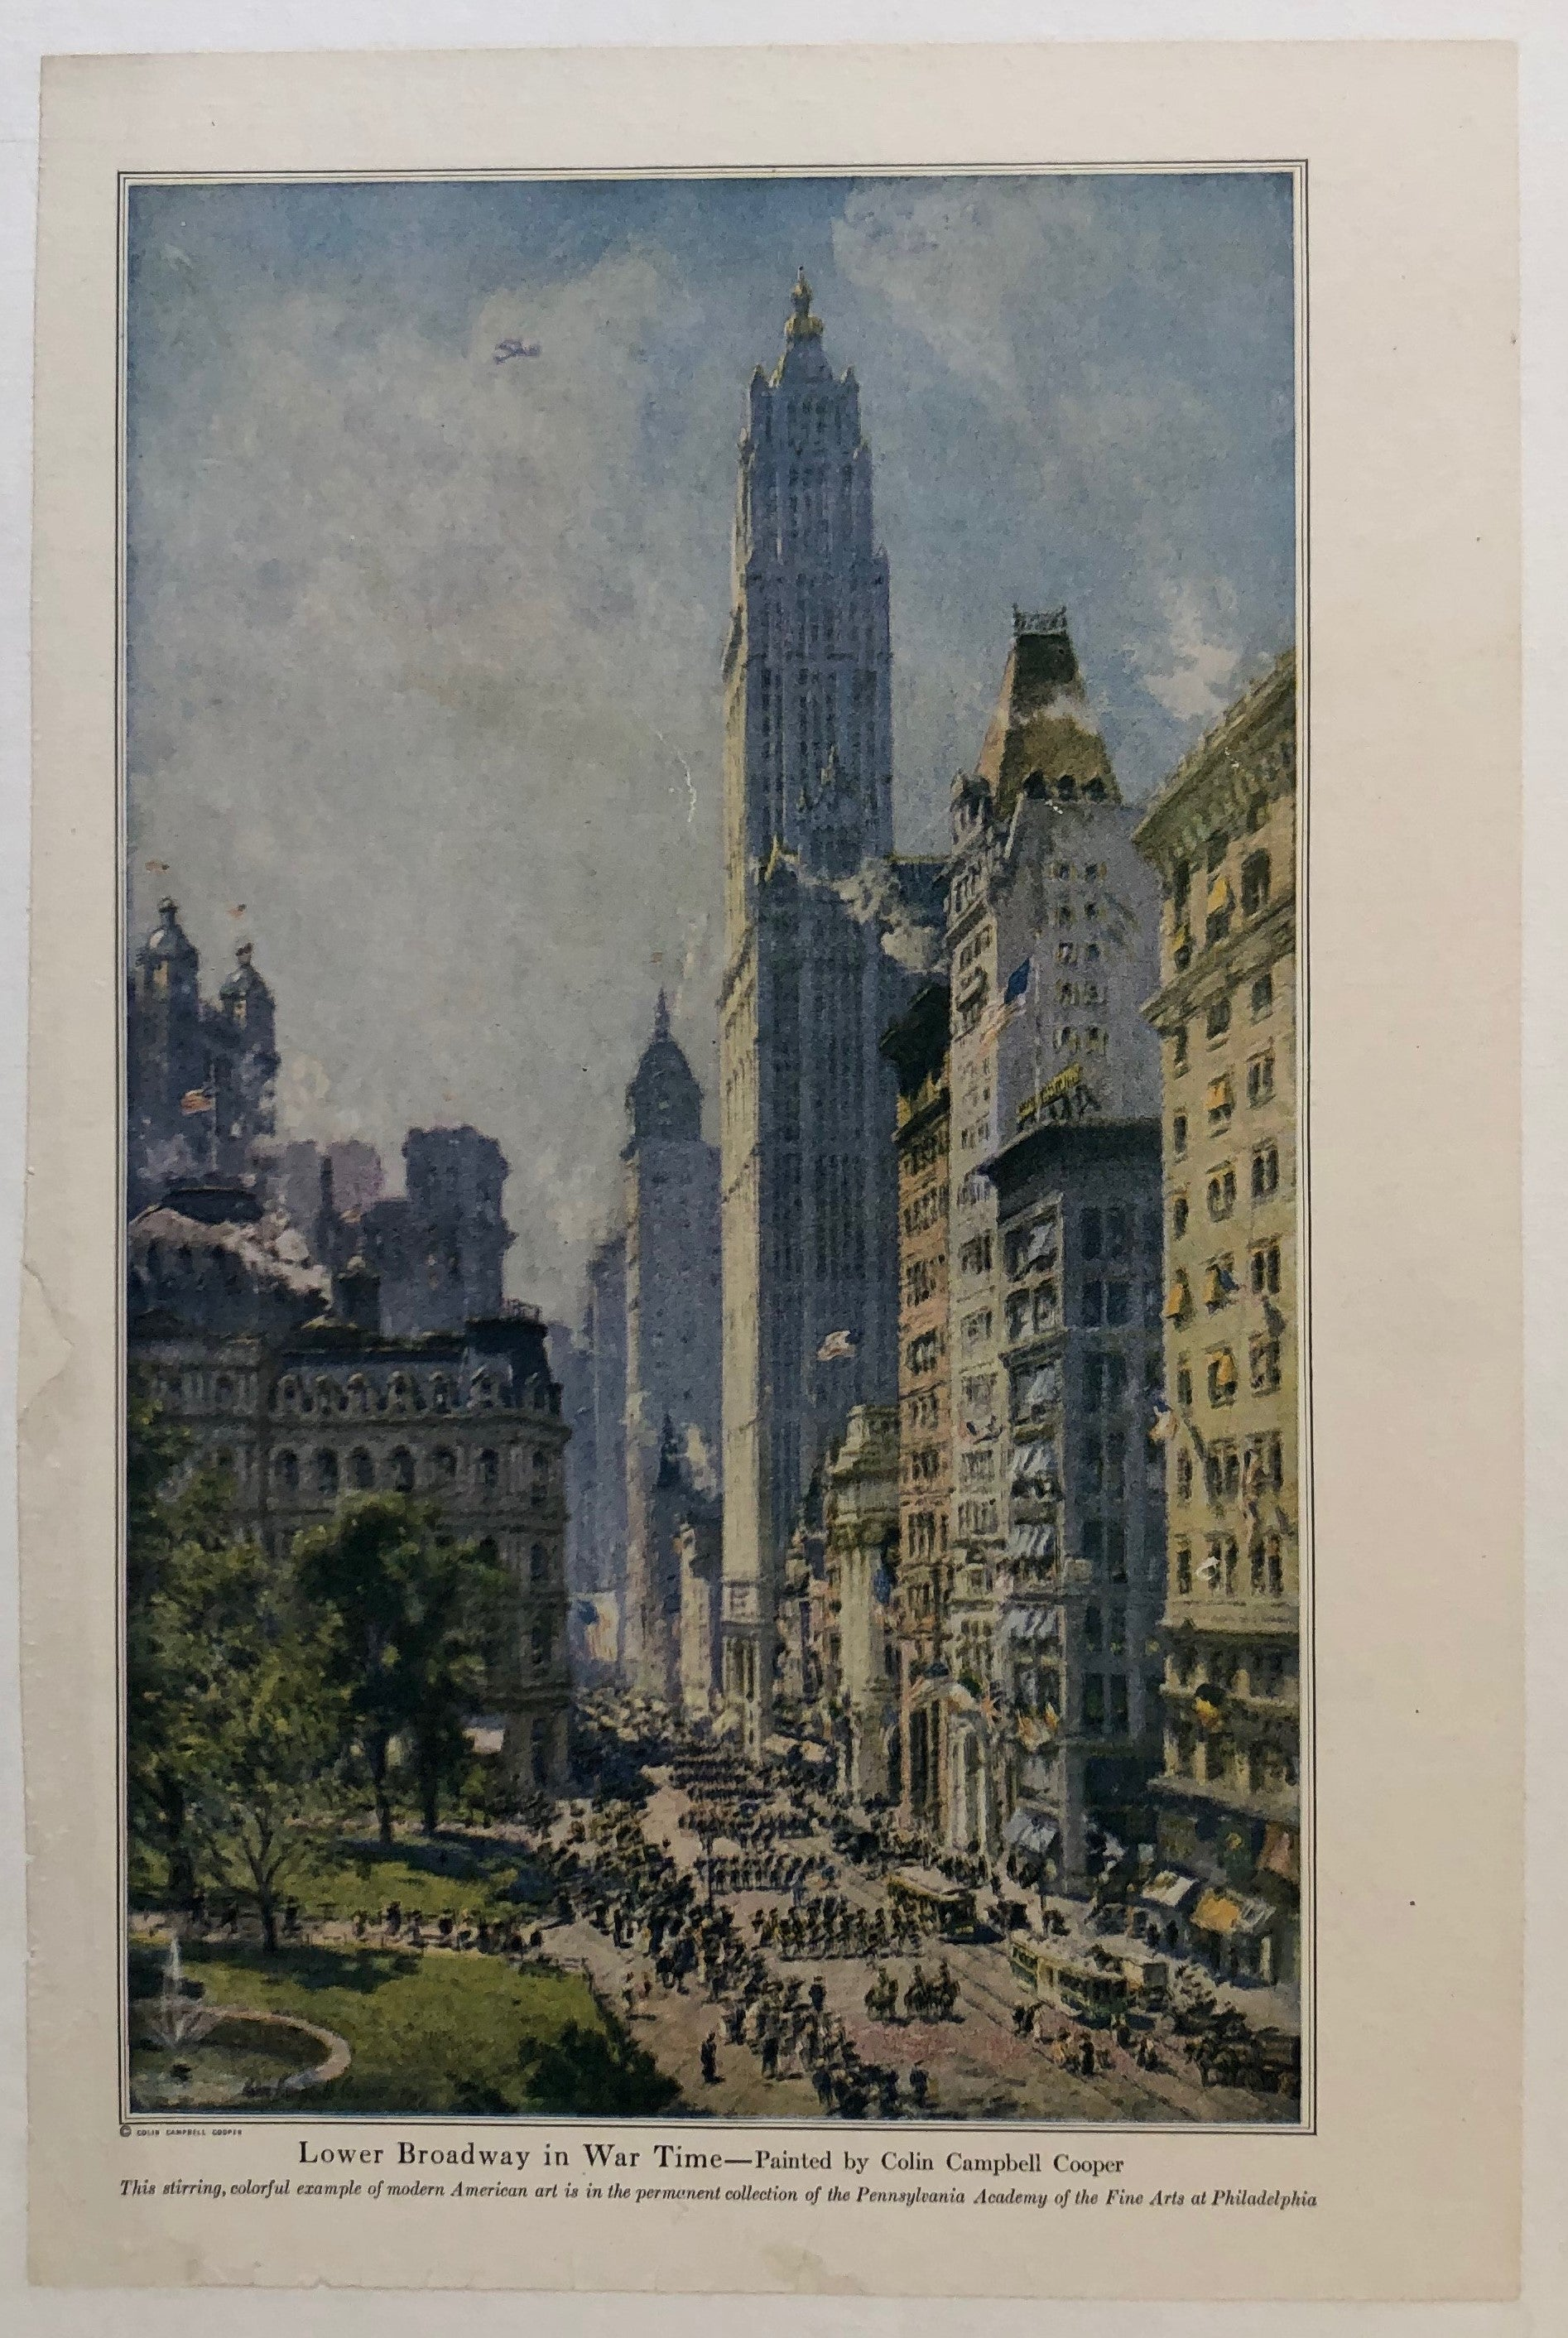 Lower Broadway in War Time by Colin Campbell Cooper